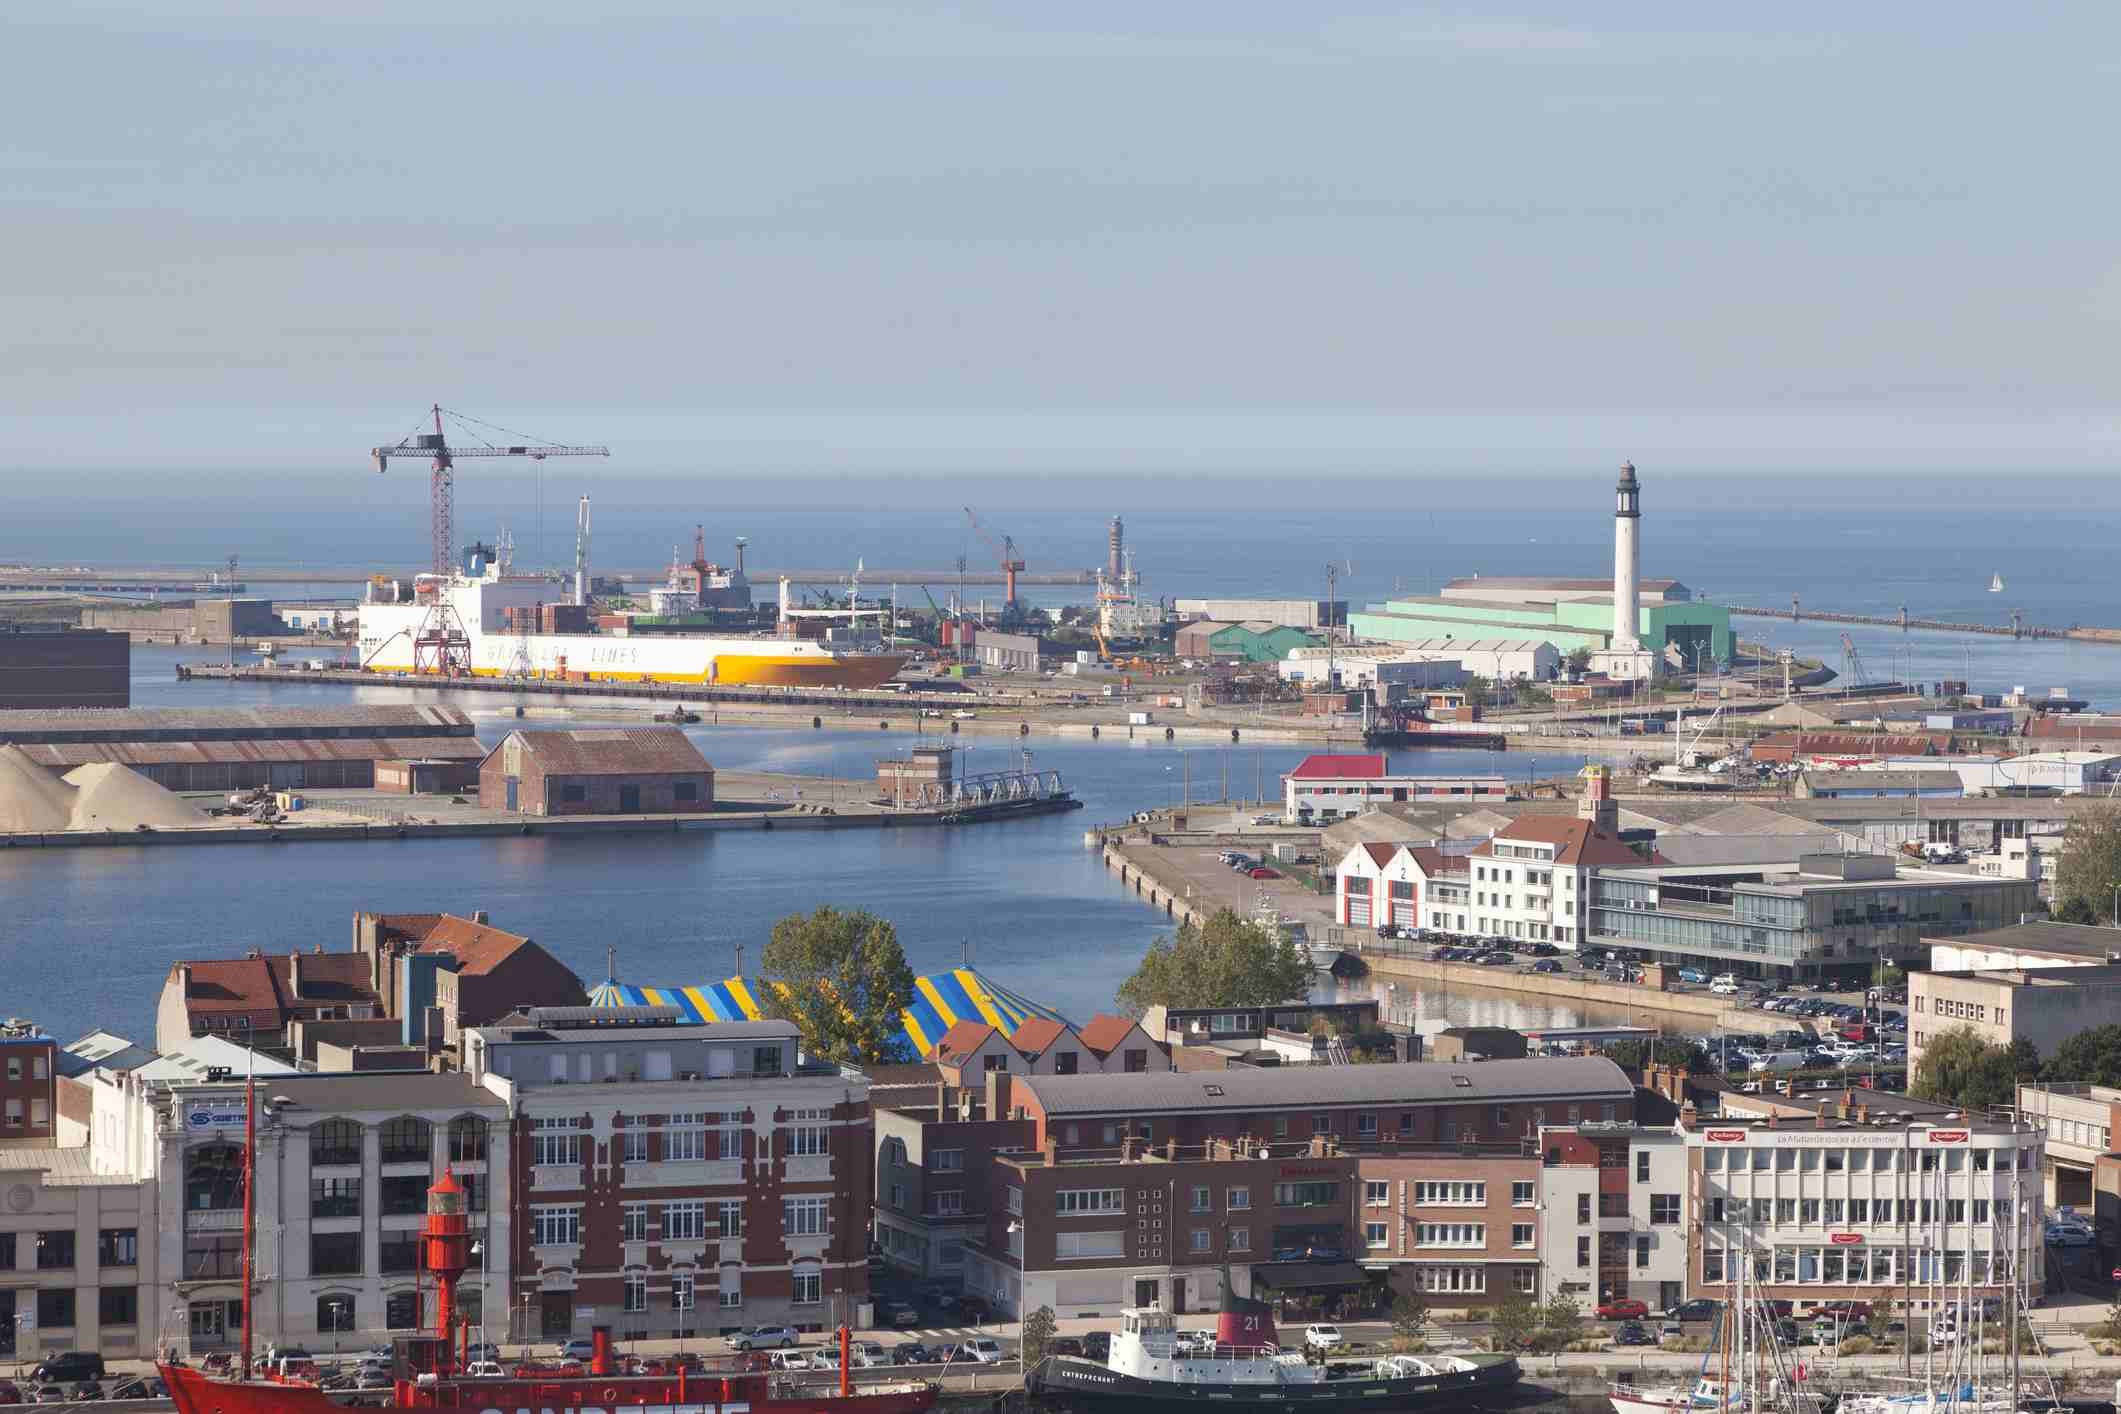 France, Nord, Dunkirk, view of the industrial port and lighthouse